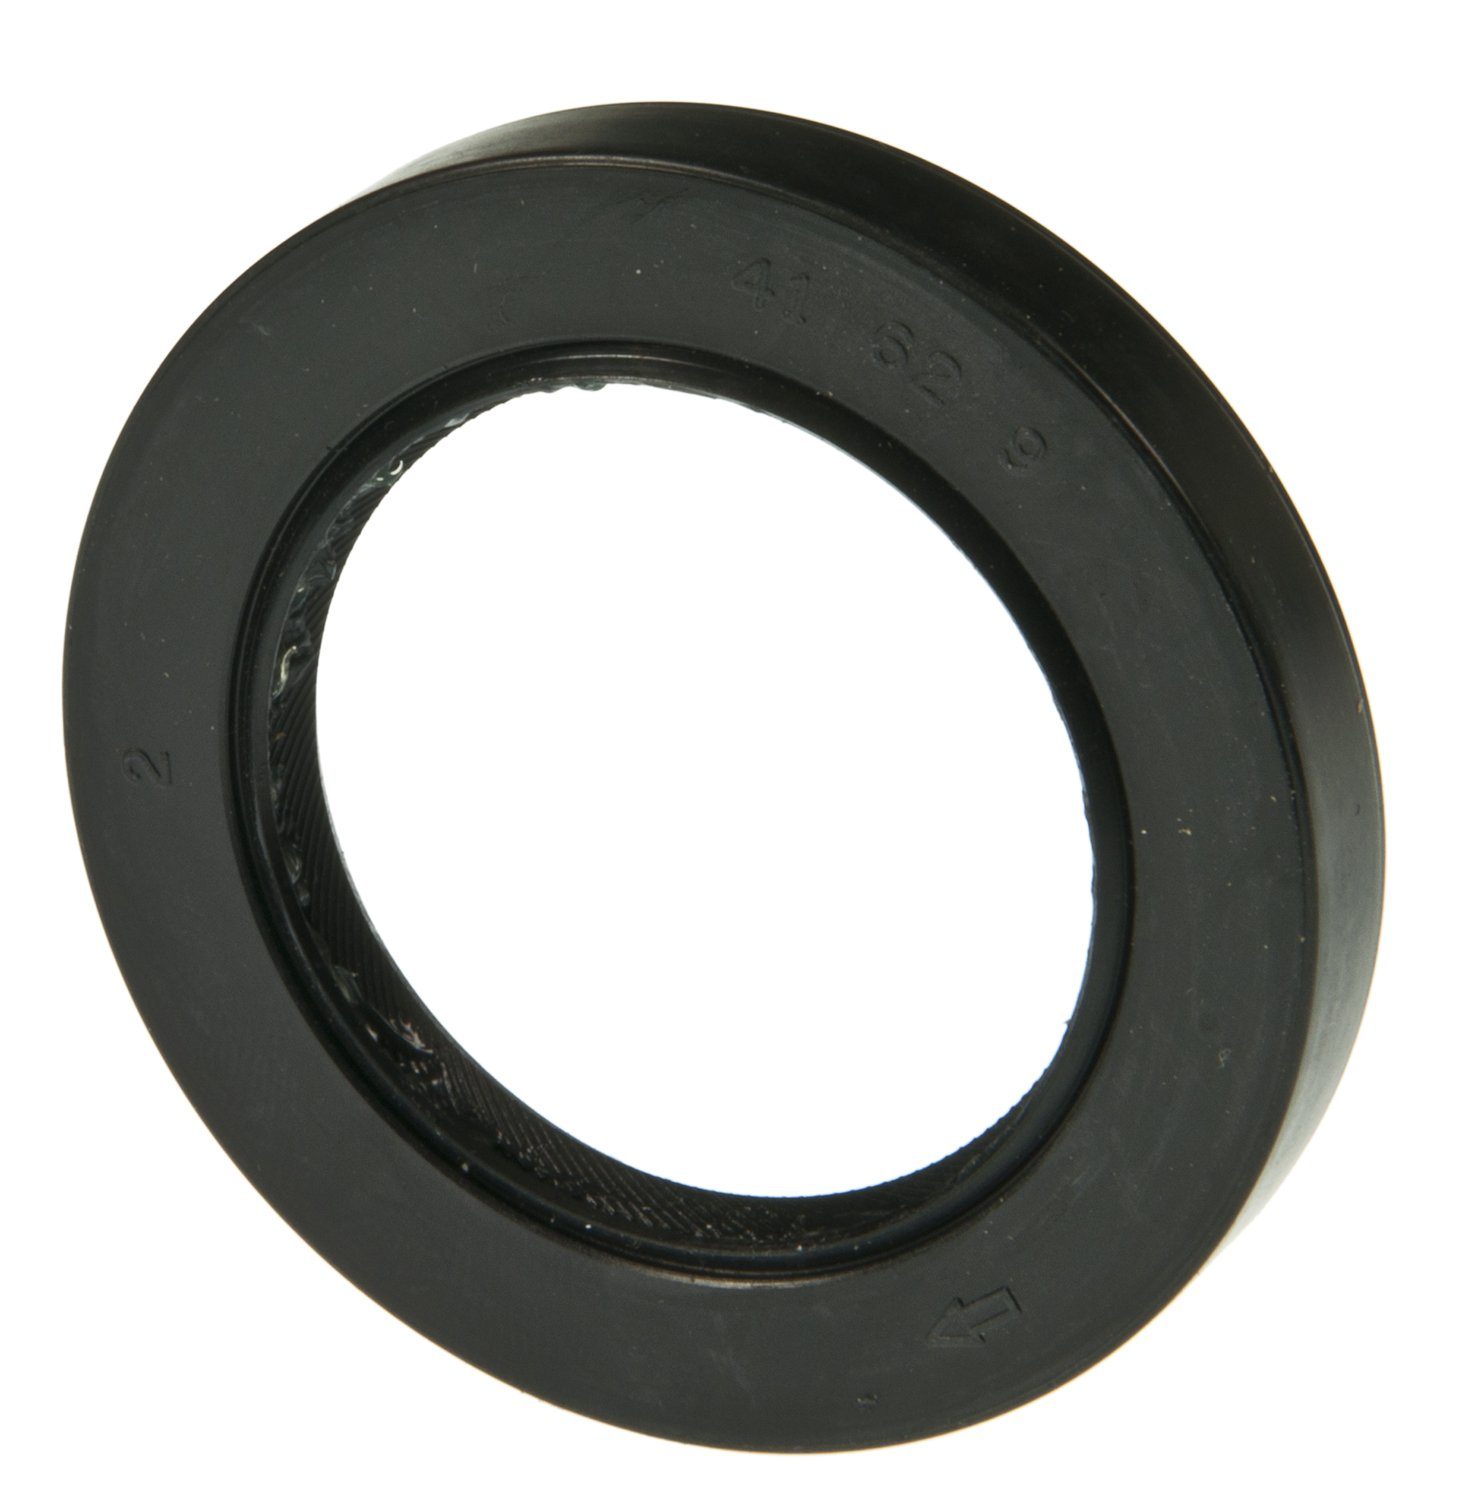 National 710220 Oil Seal 710220-NAT